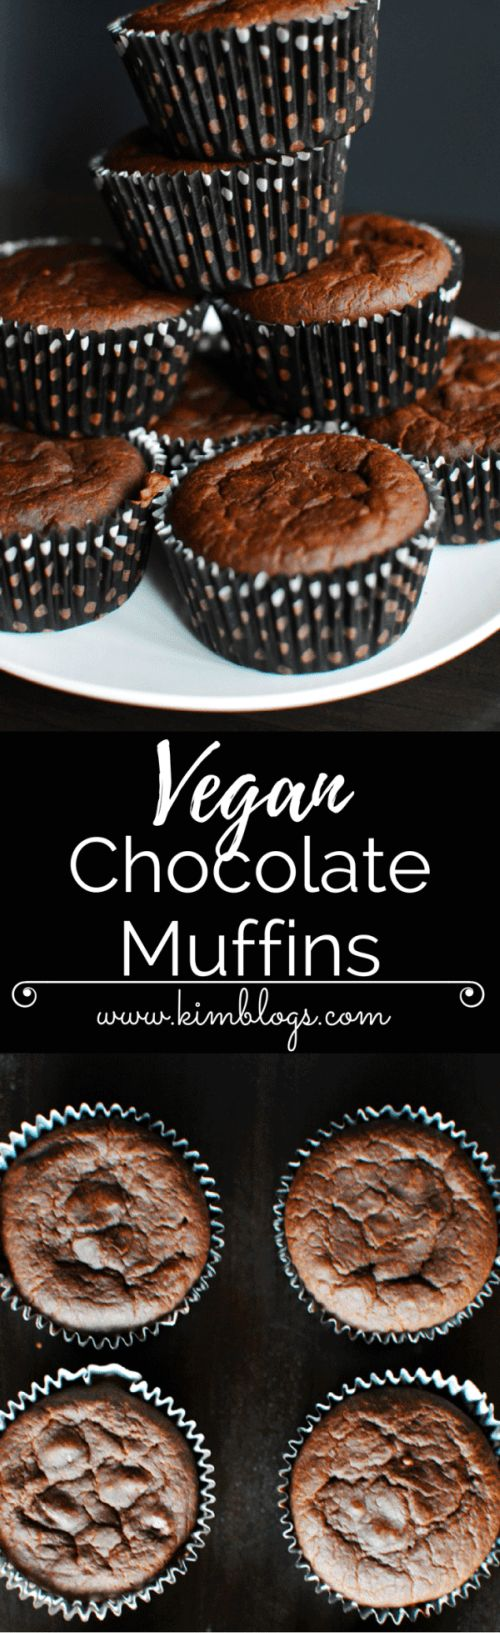 Easy to make vegan chocolate muffins using maple syrup, coconut oil and cocoa powder. Soft and very tasty. Perfect snack!